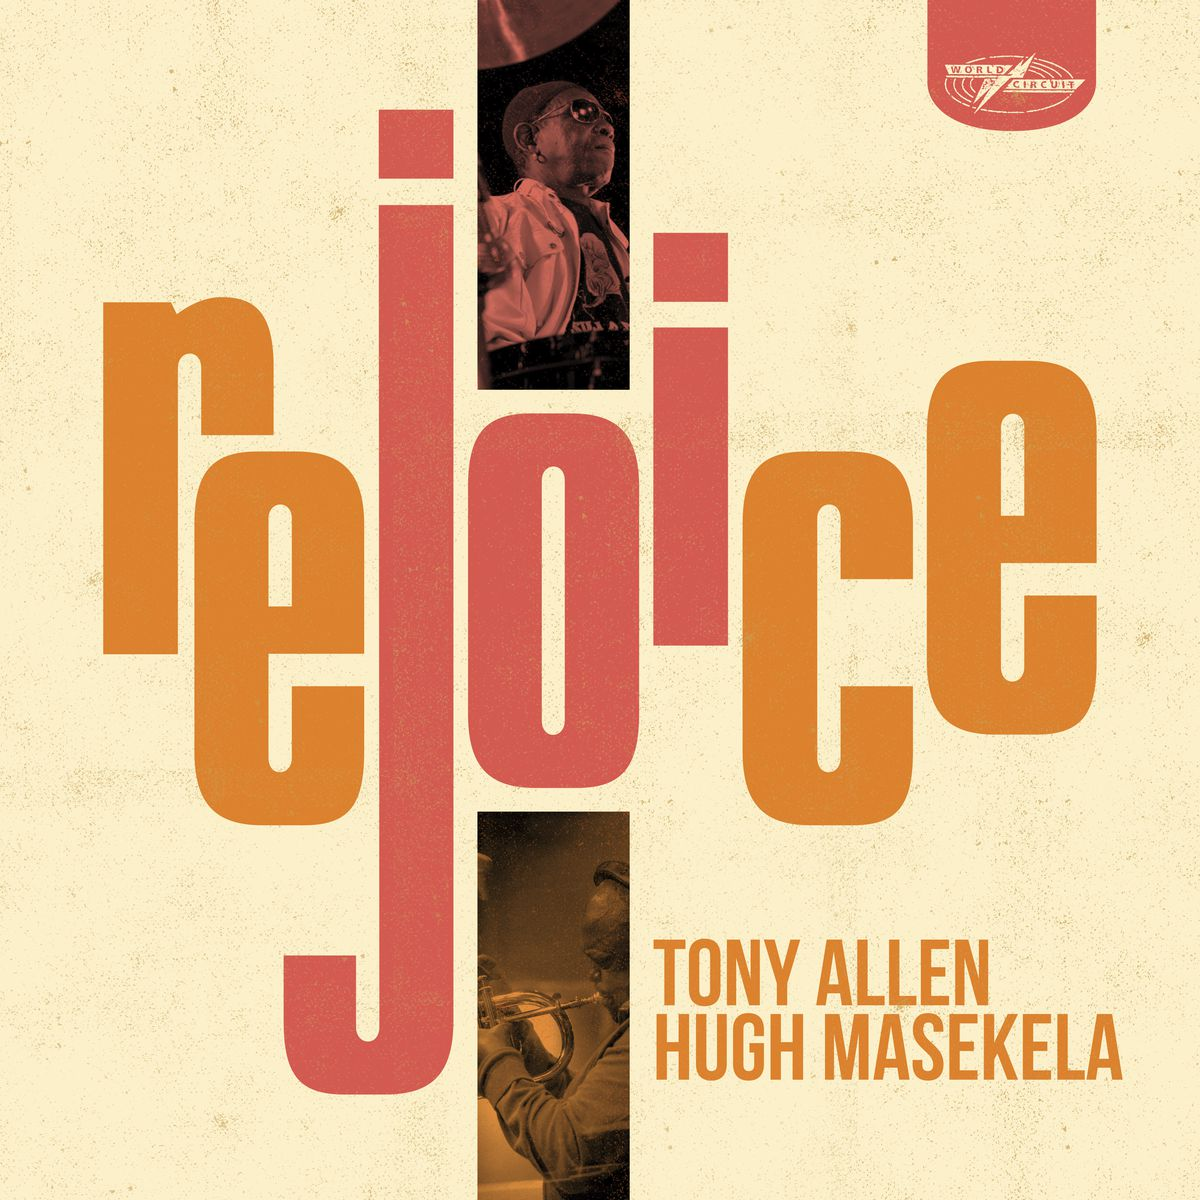 """This cover image released by World Circuit Records shows """"Rejoice"""" a release by Tony Allen & Hugh Masekela."""